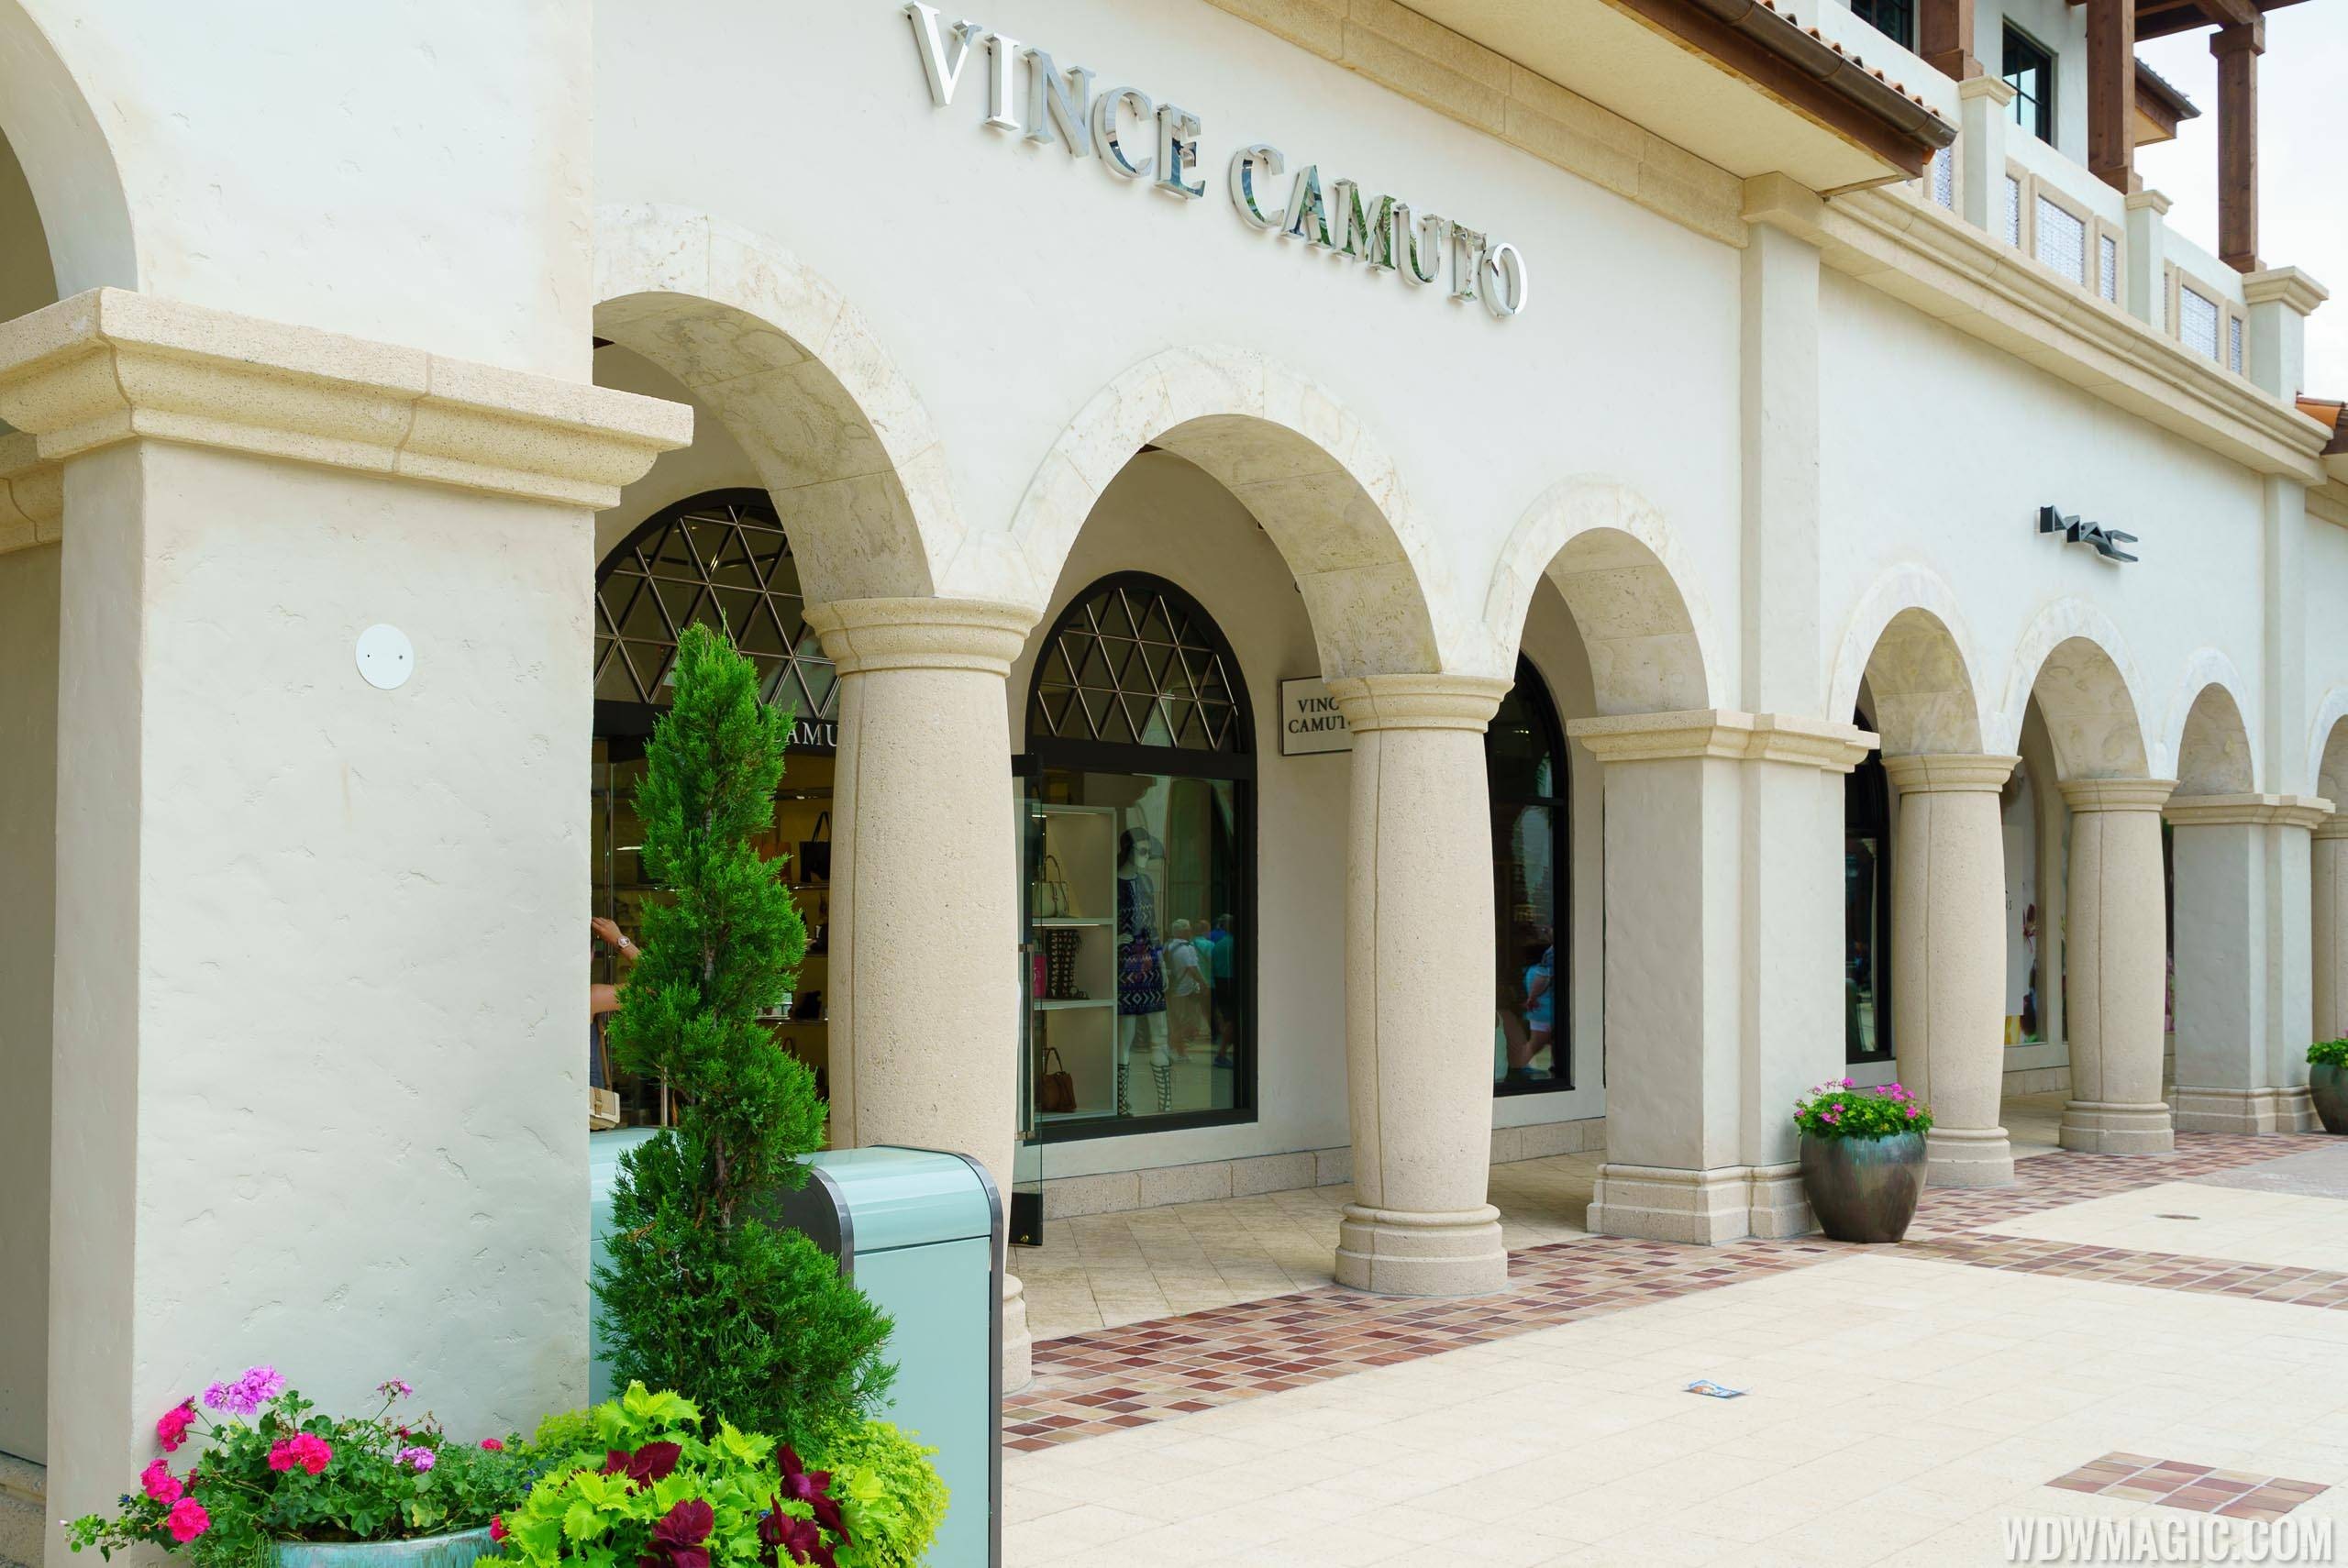 Vince Camuto overview